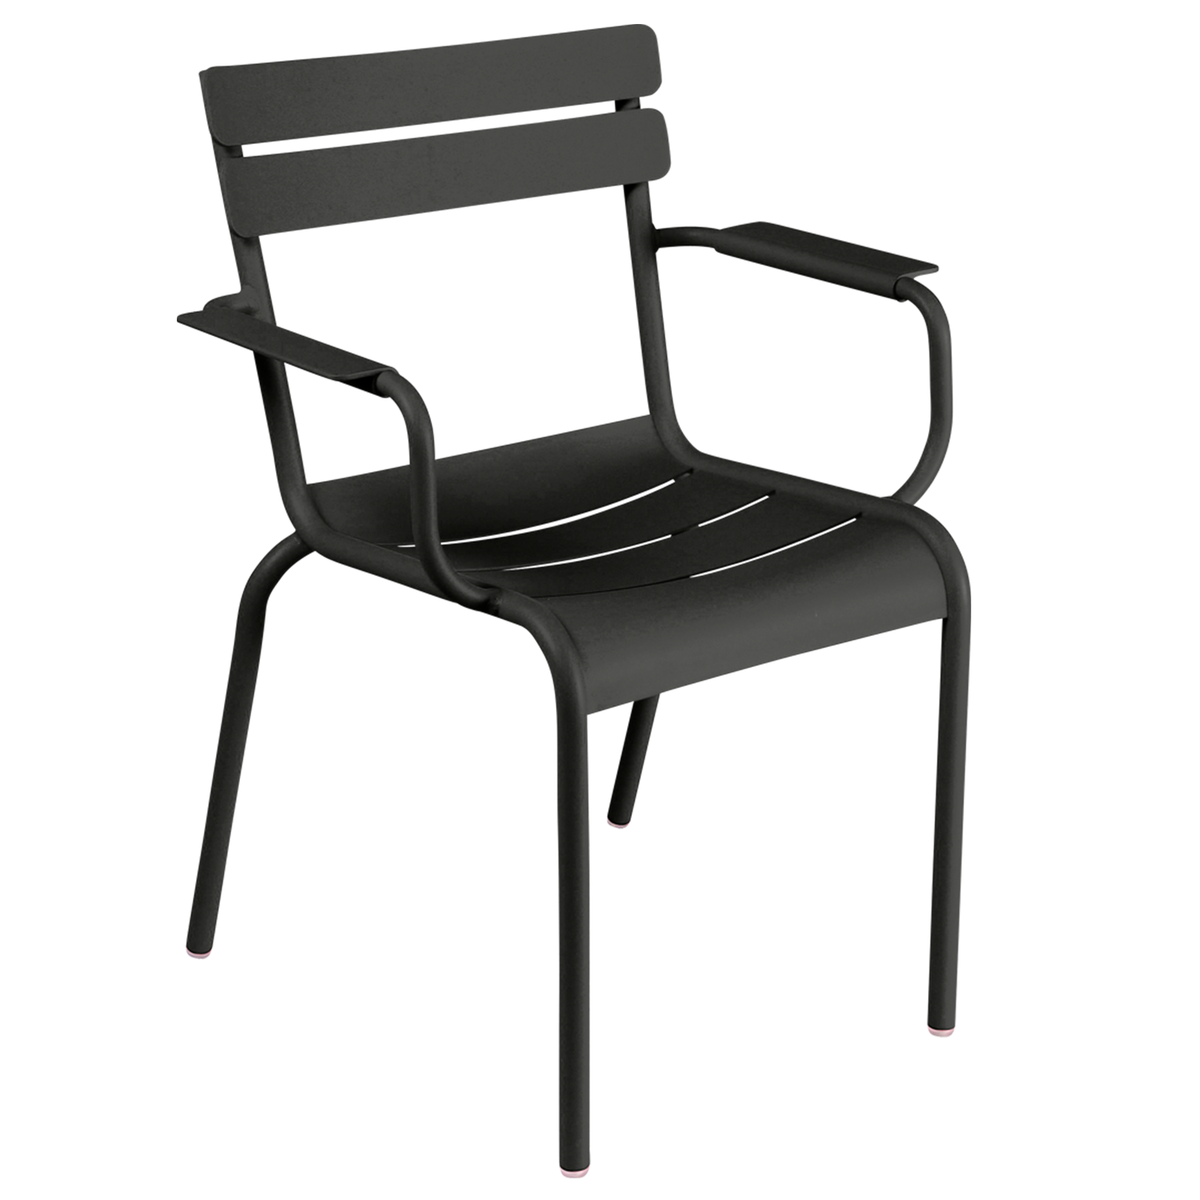 Fermob Luxembourg armchair, liquorice from Fermob